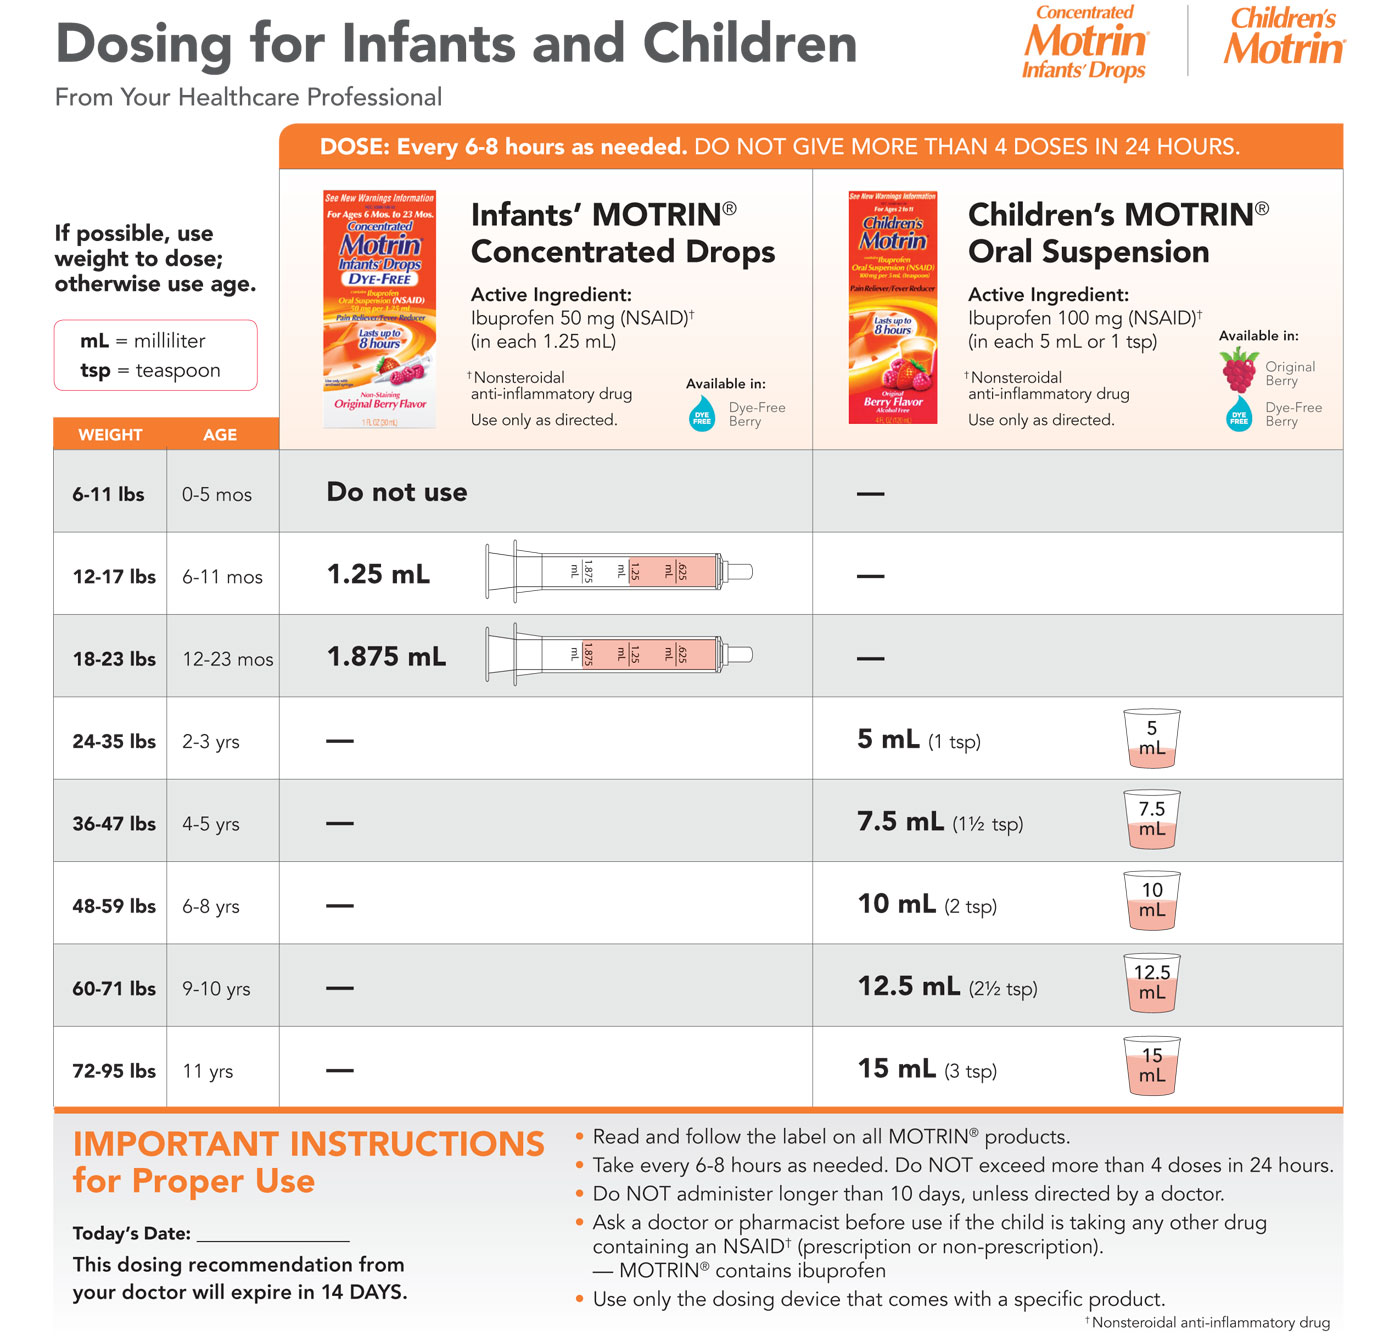 Motrin Ibuprofen Dosage For Children Pediatrics Pediatrician